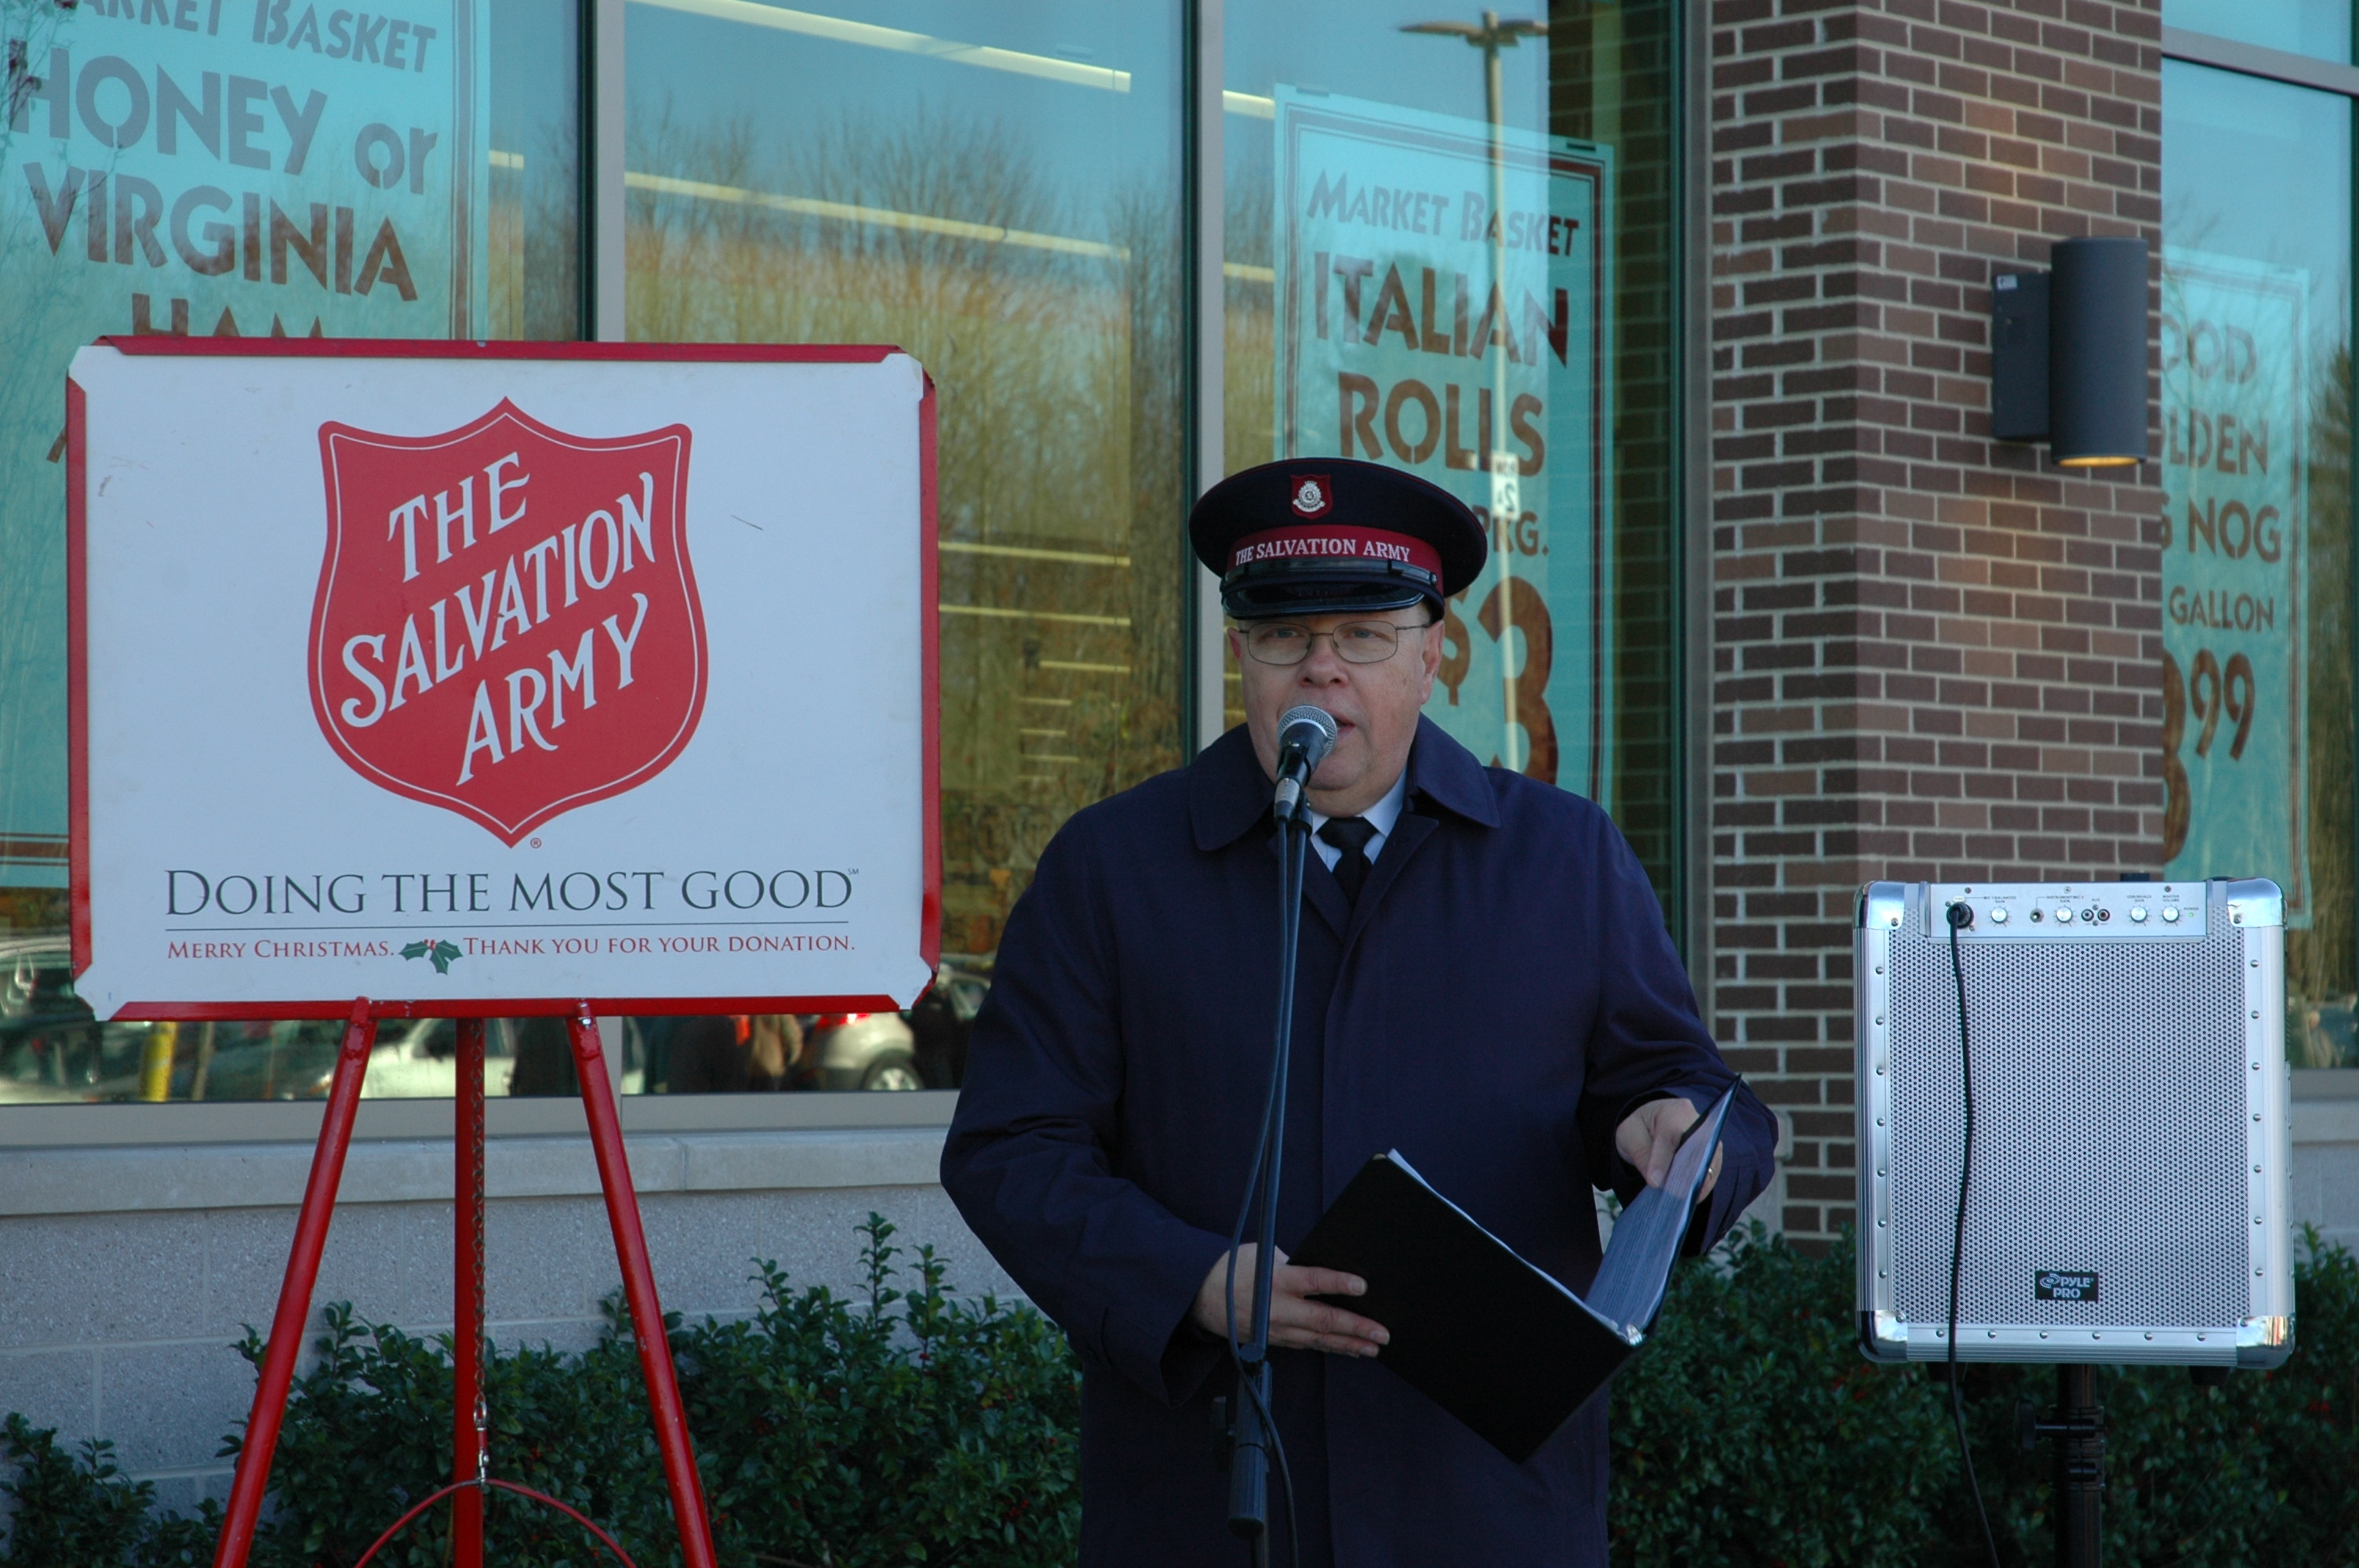 Salvation Army Major B. Bryan Smith speaks Saturday morning at the Red Kettle Christmas Campaign kick off in front of Market Basket in Biddeford Saturday.